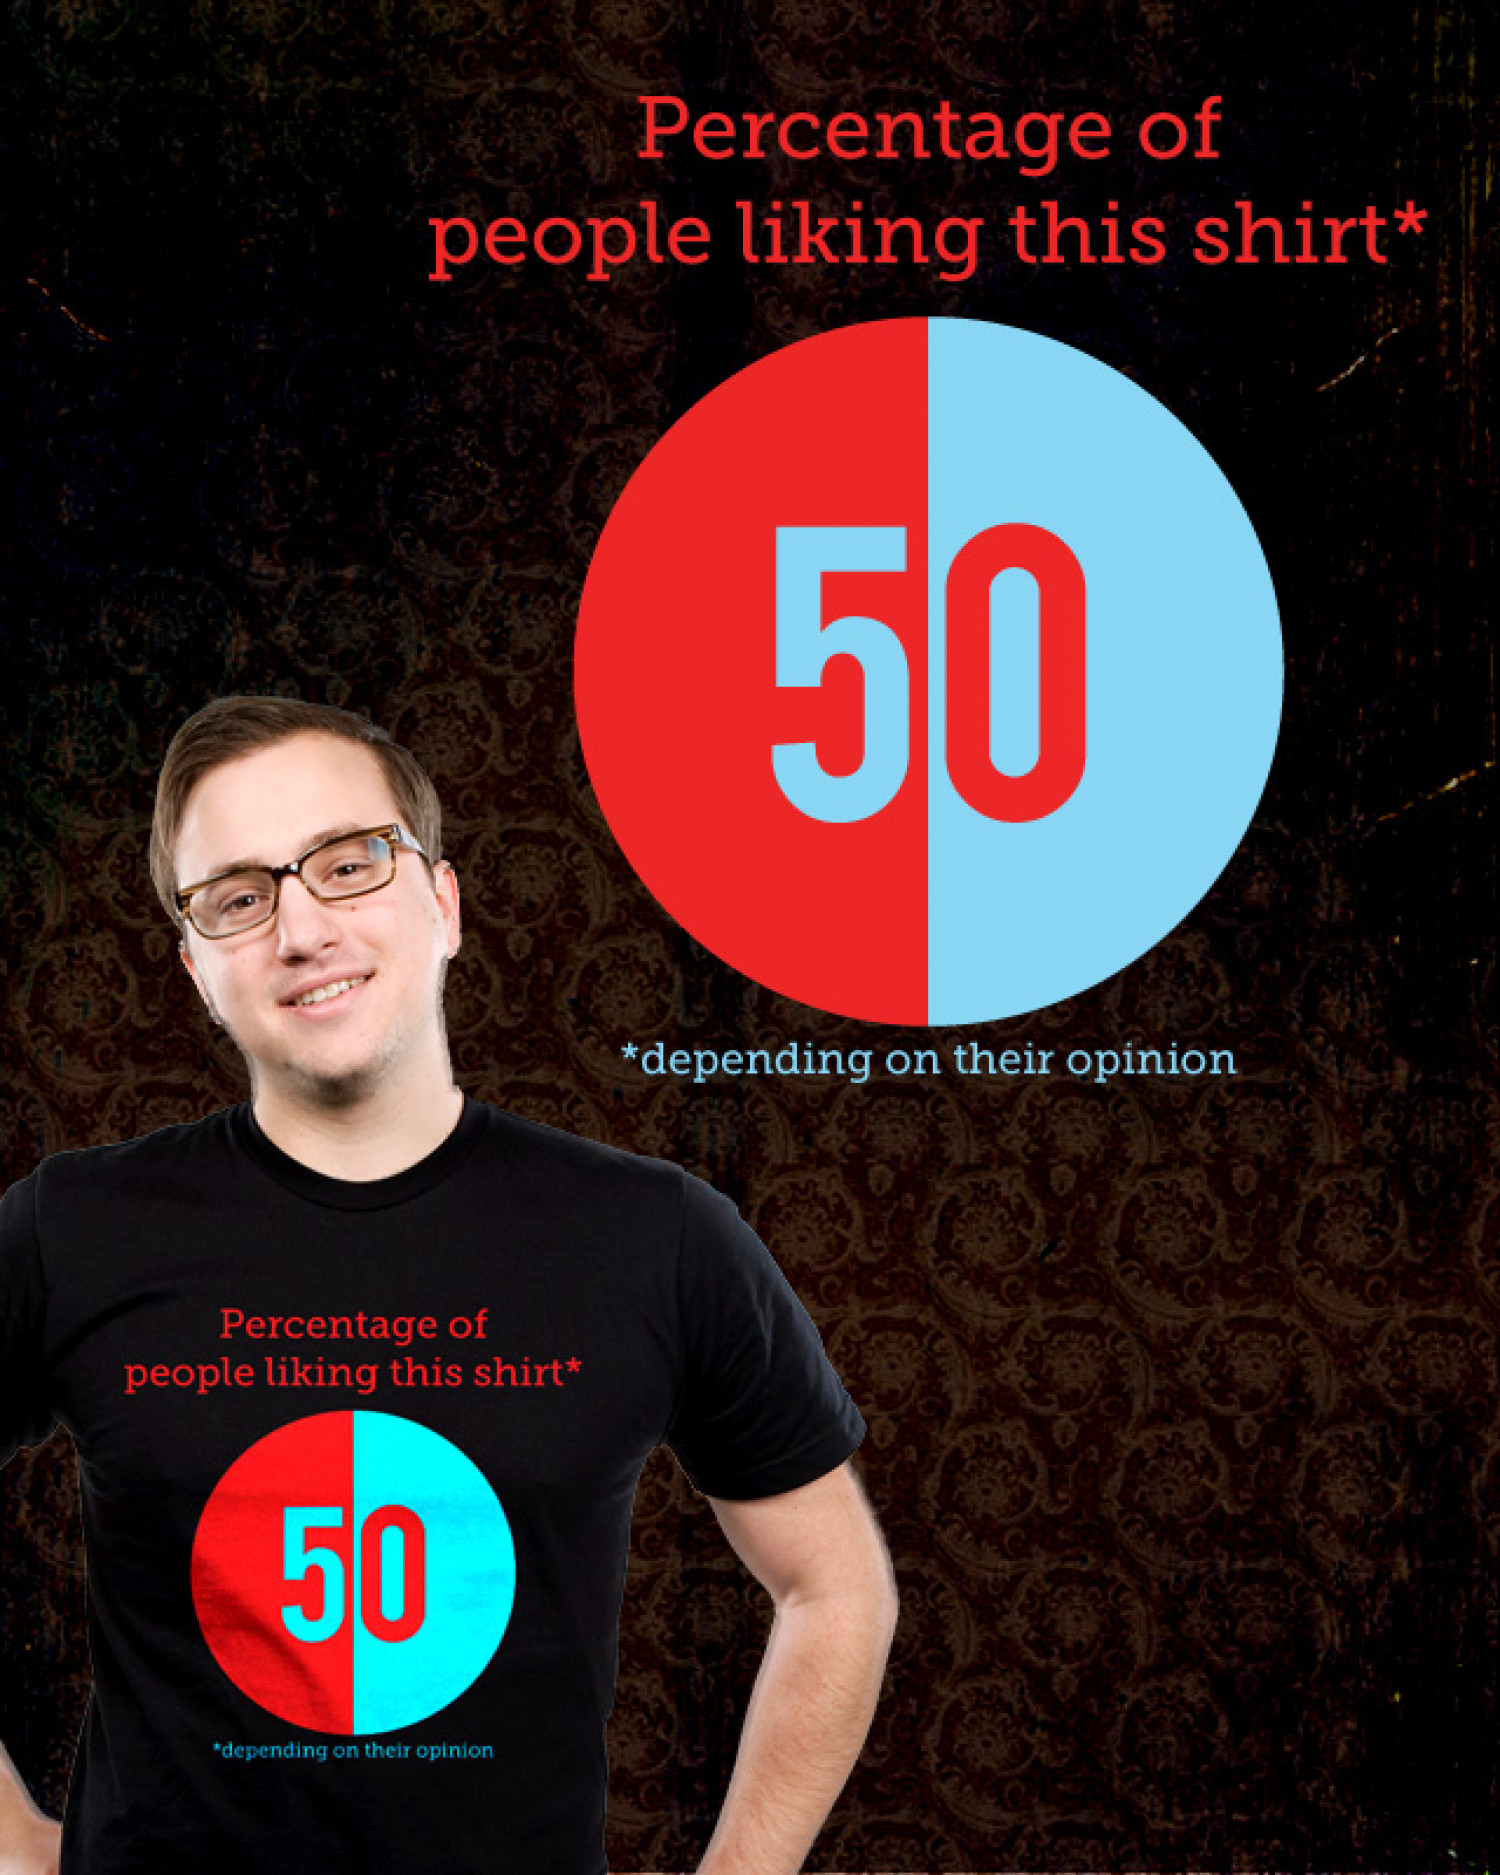 Percentage of people Liking this shirt Infographic